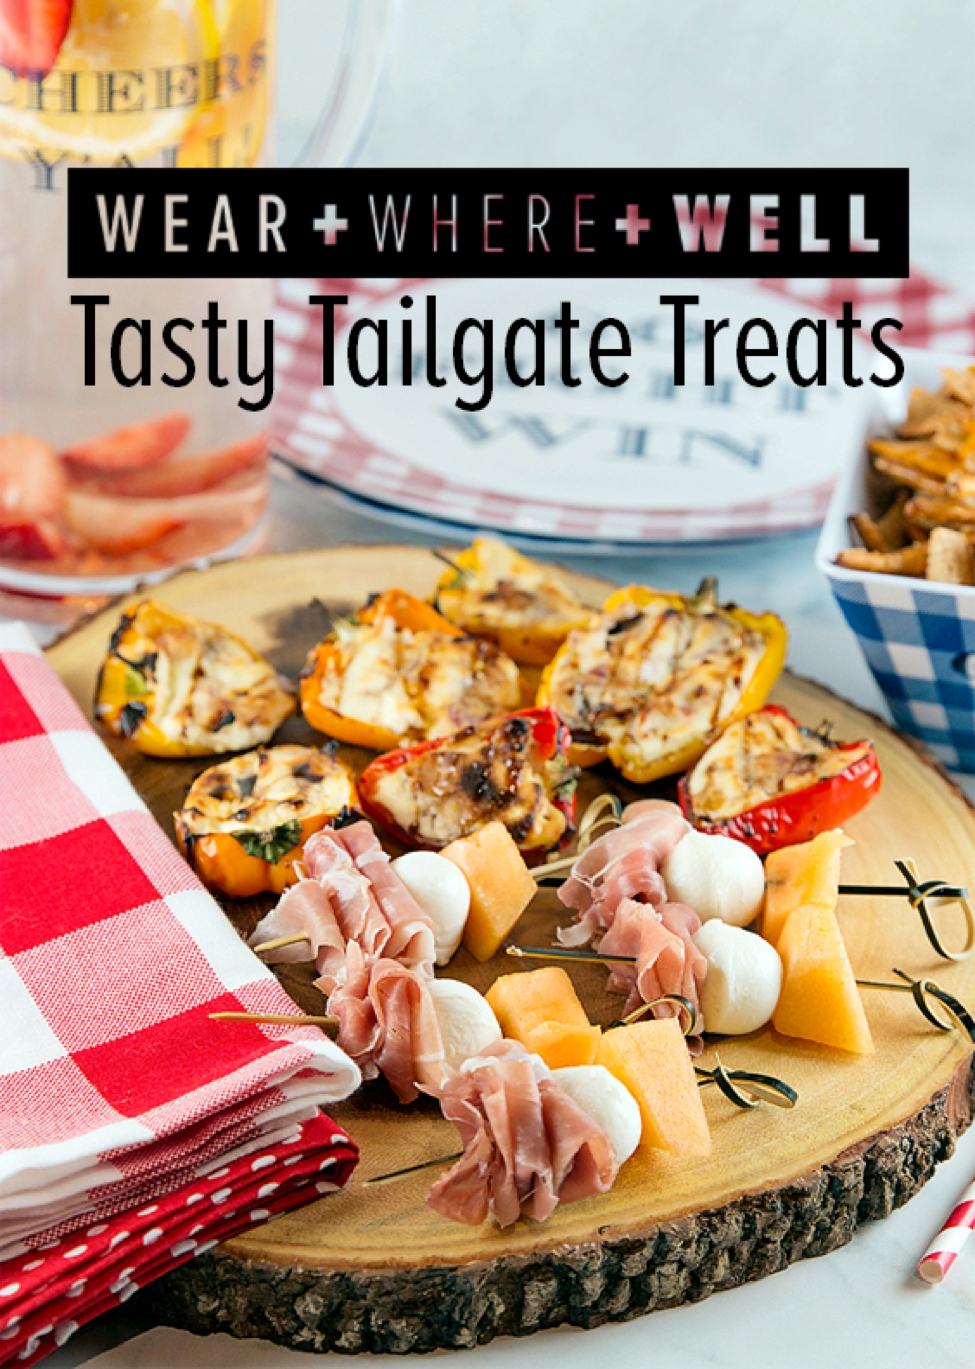 Wear Where Well Football Tailgating Recipes with Draper James_0001